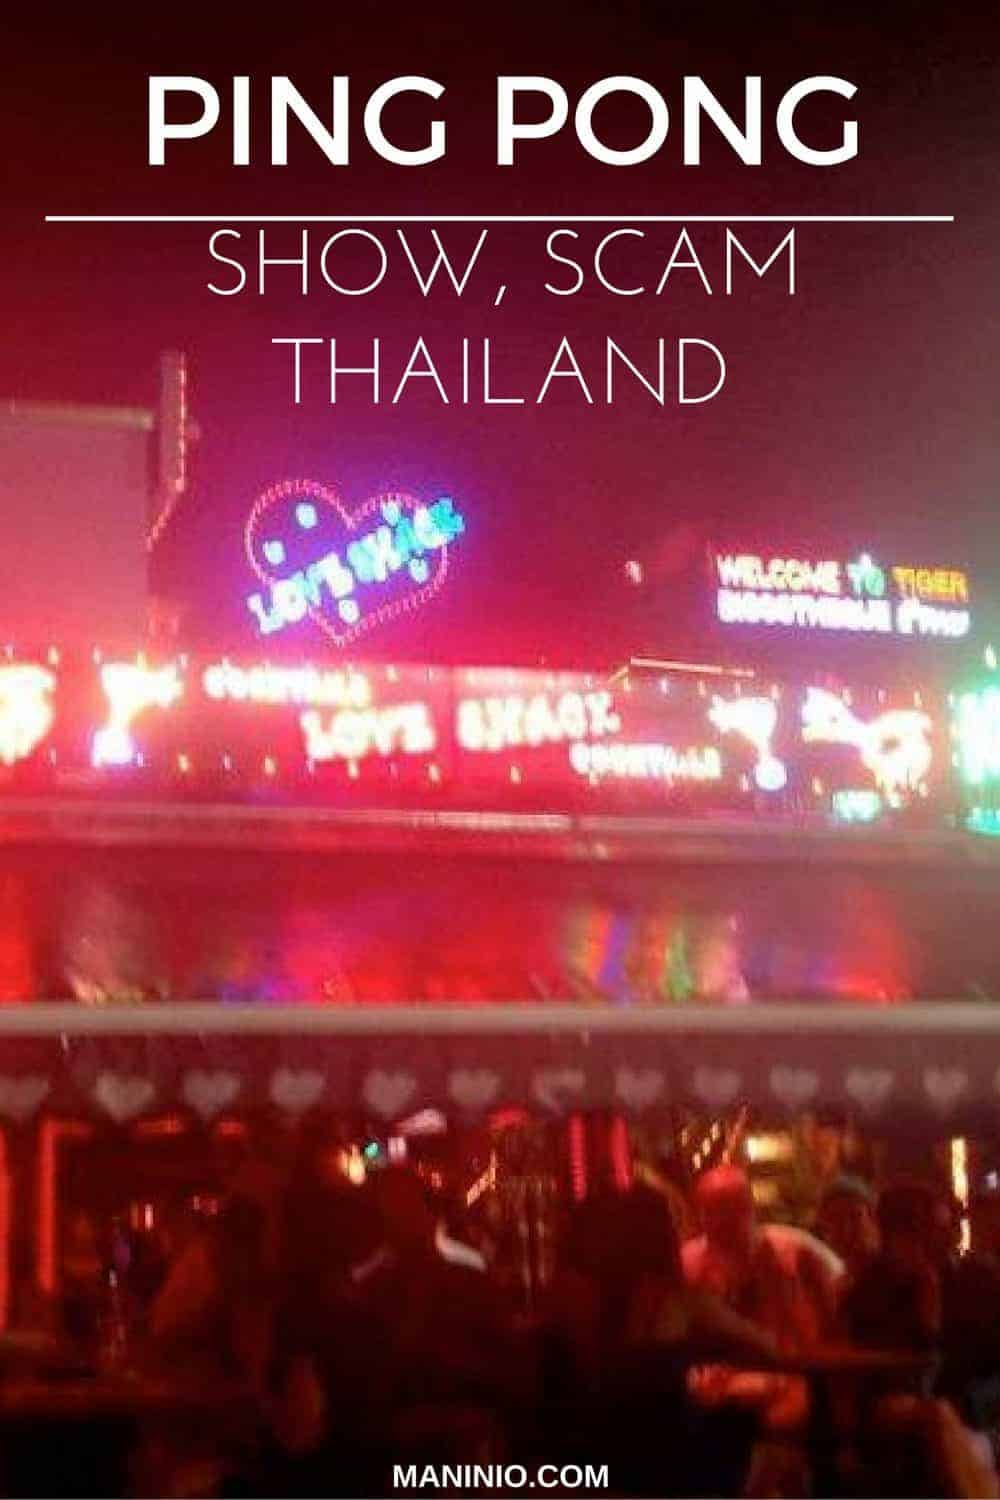 Ping Pong show scam in Bangkok, Thailand